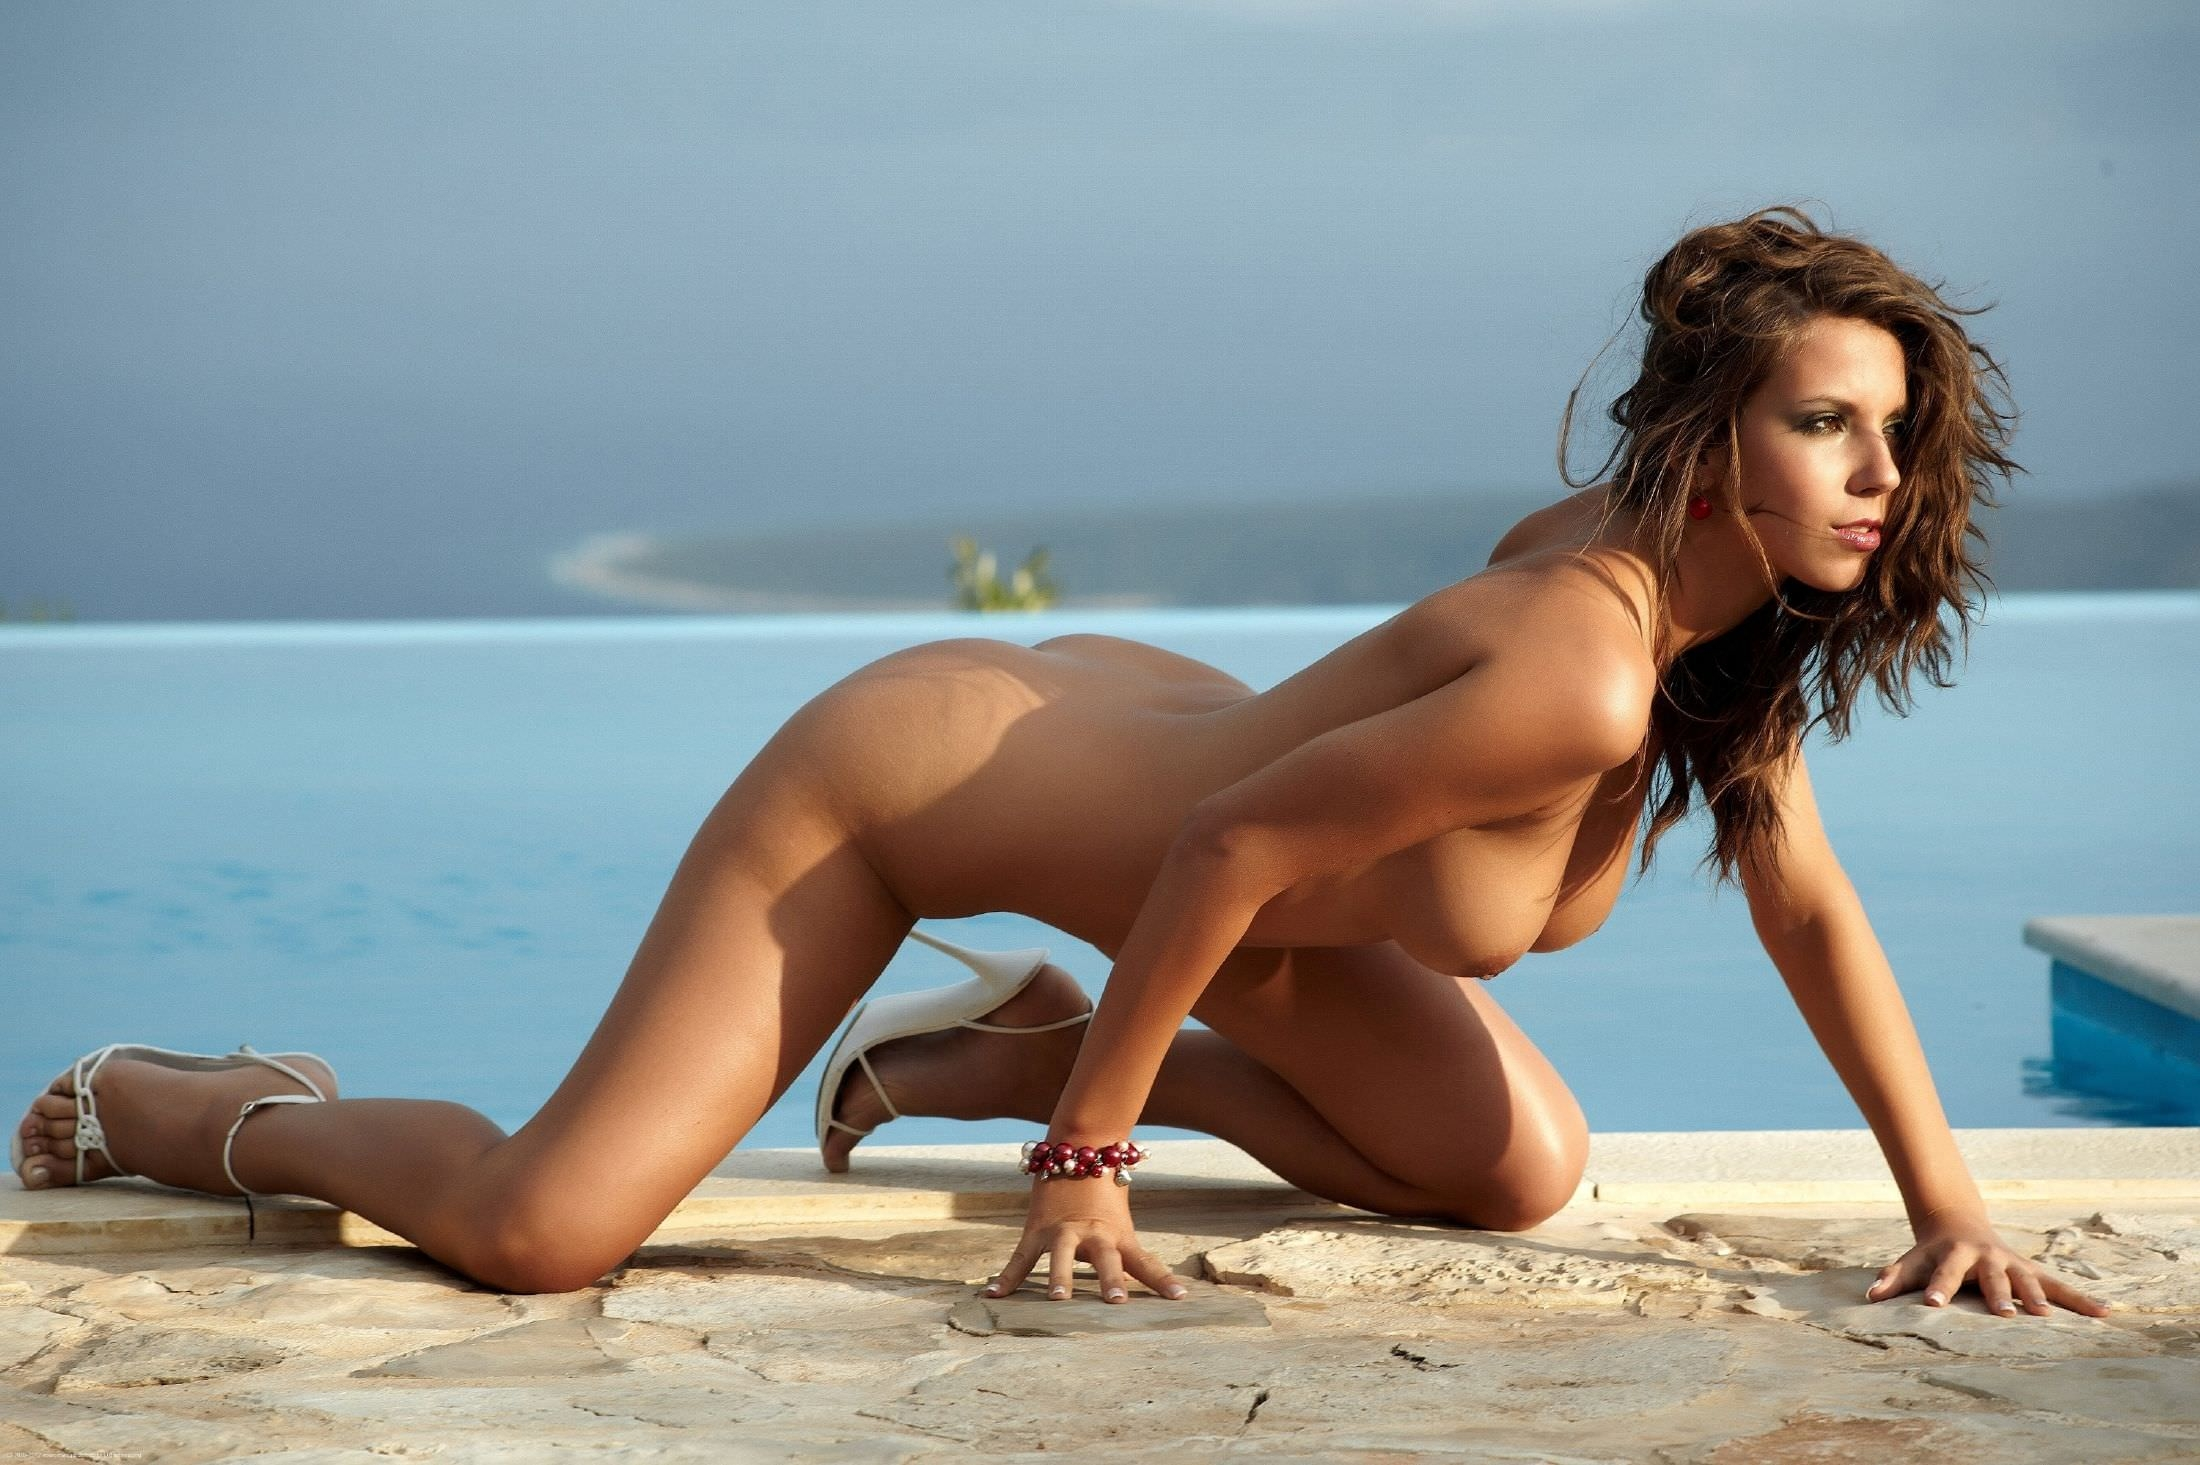 Naked Petite Girl With Brown Hair